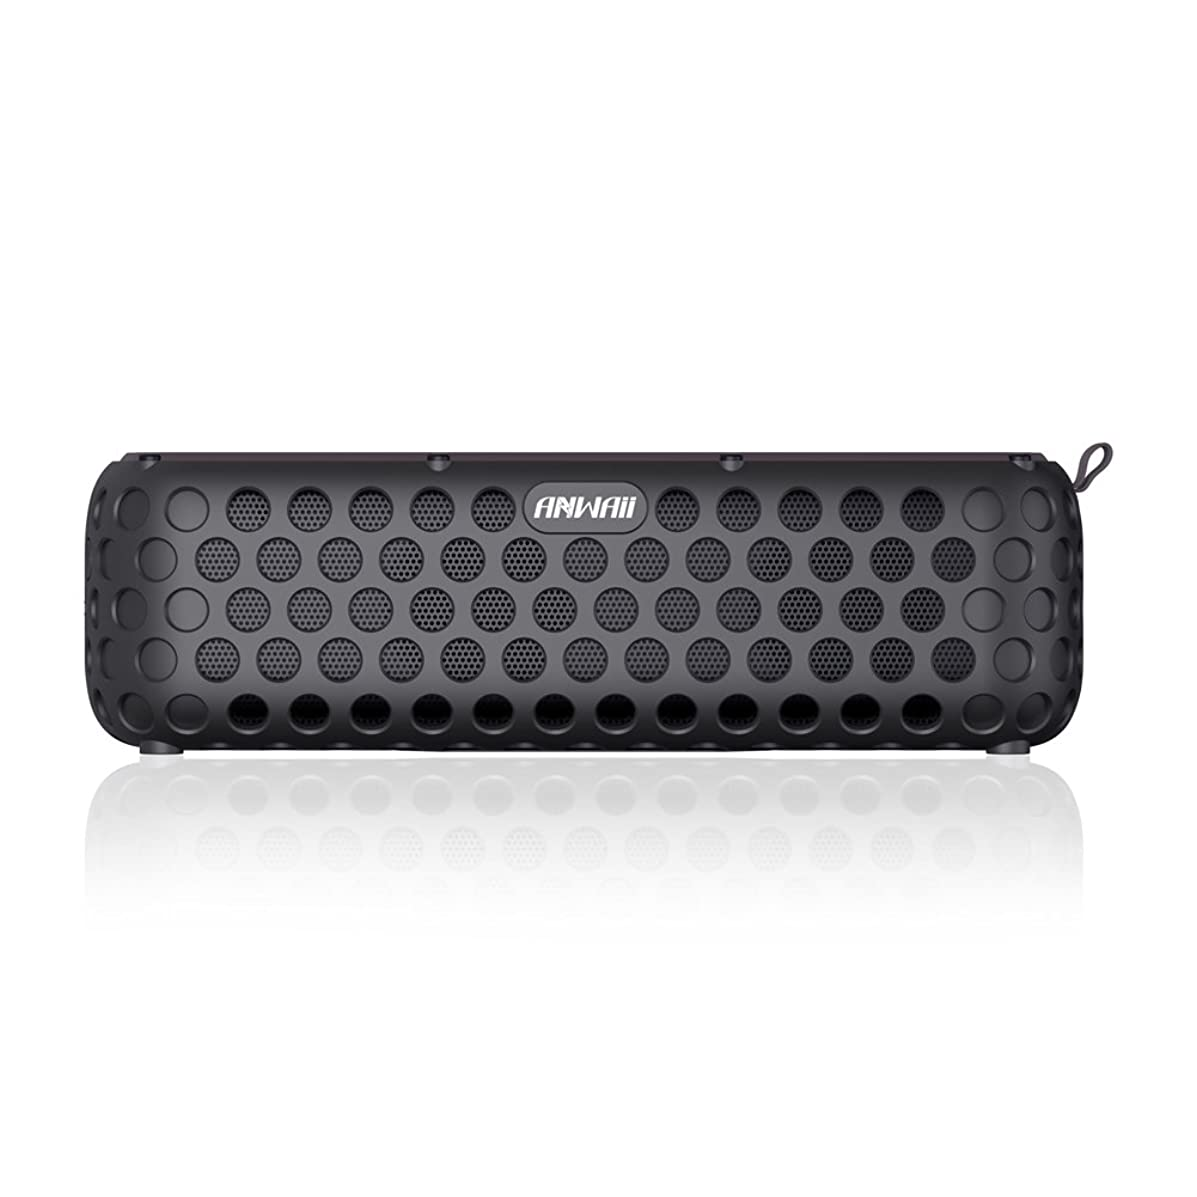 Multifunctional Rechargeable Bluetooth Speaker- Anwaii Wireless Splash Proof Speaker- Large Autonomy- Solar and USB Recharge- Portable and Practical- Ideal for Pool, Travel, Camping, Beach